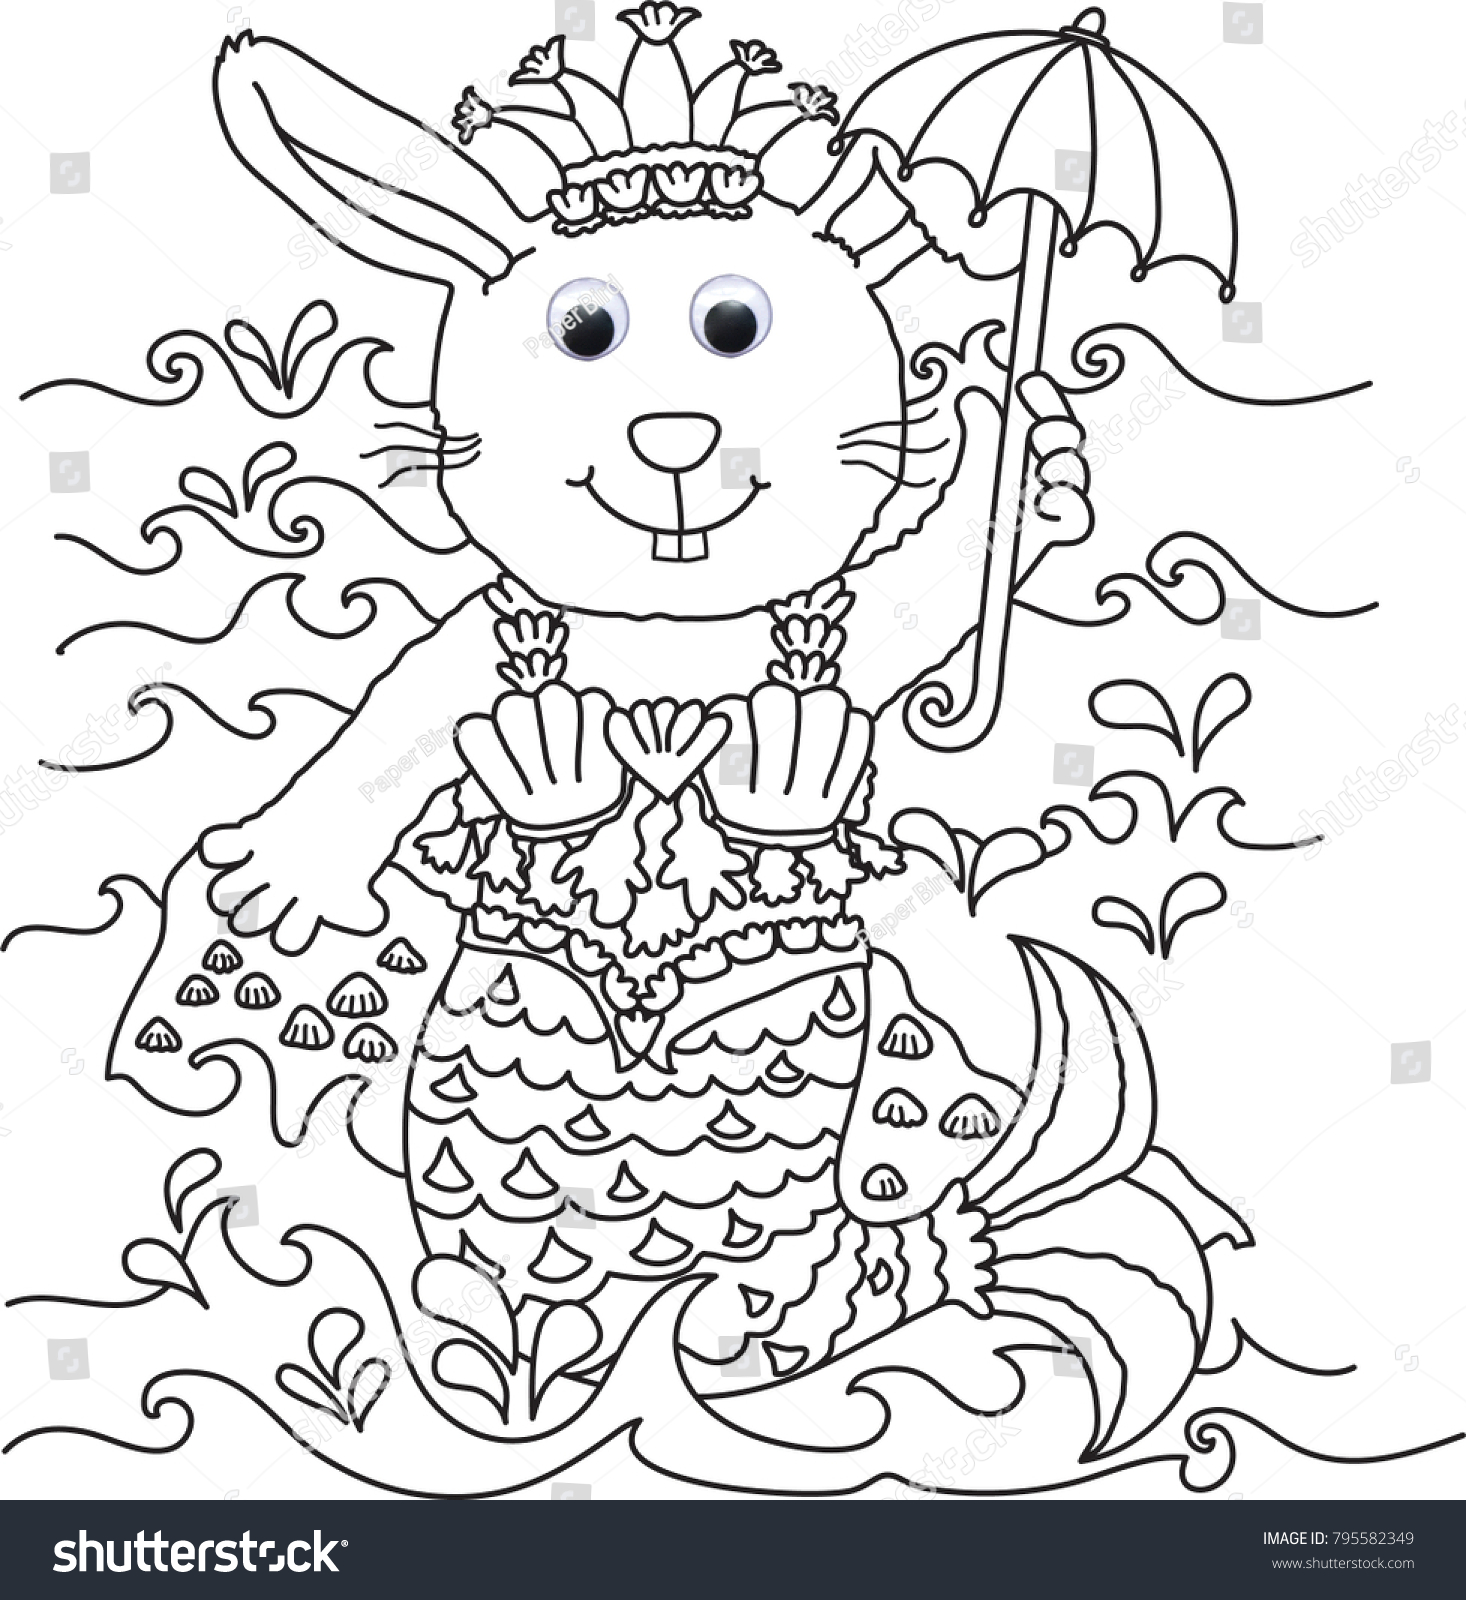 Dress Bunny Images Colouring Book Activity Stock Illustration ...